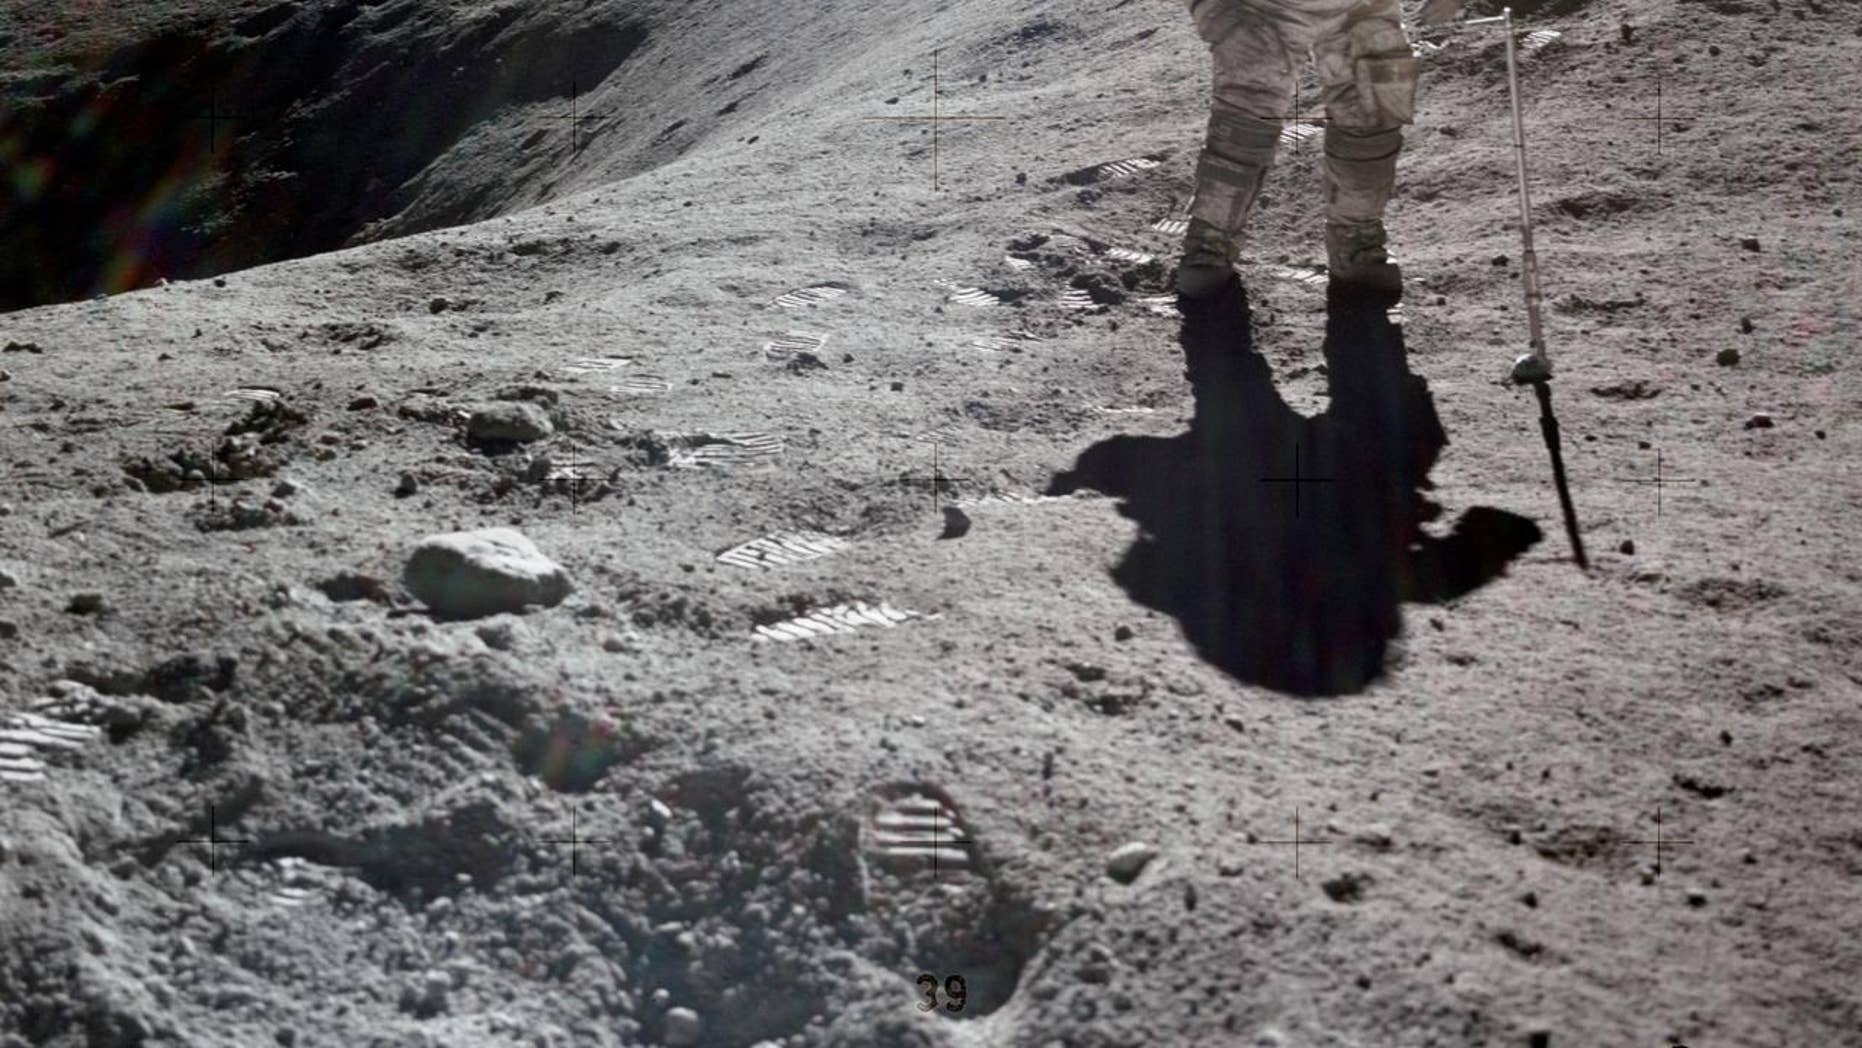 """Charles Duke, Apollo's 16th Moon Modotilot, is photographed by collecting moon samples at Station No. 1<div class=""""e3lan e3lan-in-post1""""><script async src=""""//pagead2.googlesyndication.com/pagead/js/adsbygoogle.js""""></script> <!-- Text_Image --> <ins class=""""adsbygoogle""""      style=""""display:block""""      data-ad-client=""""ca-pub-6192903739091894""""      data-ad-slot=""""3136787391""""      data-ad-format=""""auto""""      data-full-width-responsive=""""true""""></ins> <script> (adsbygoogle = window.adsbygoogle    []).push({}); </script></div> during the first Apollo 16 extravehicular activity (EVA) at the Descartes landing site. (NASA)"""